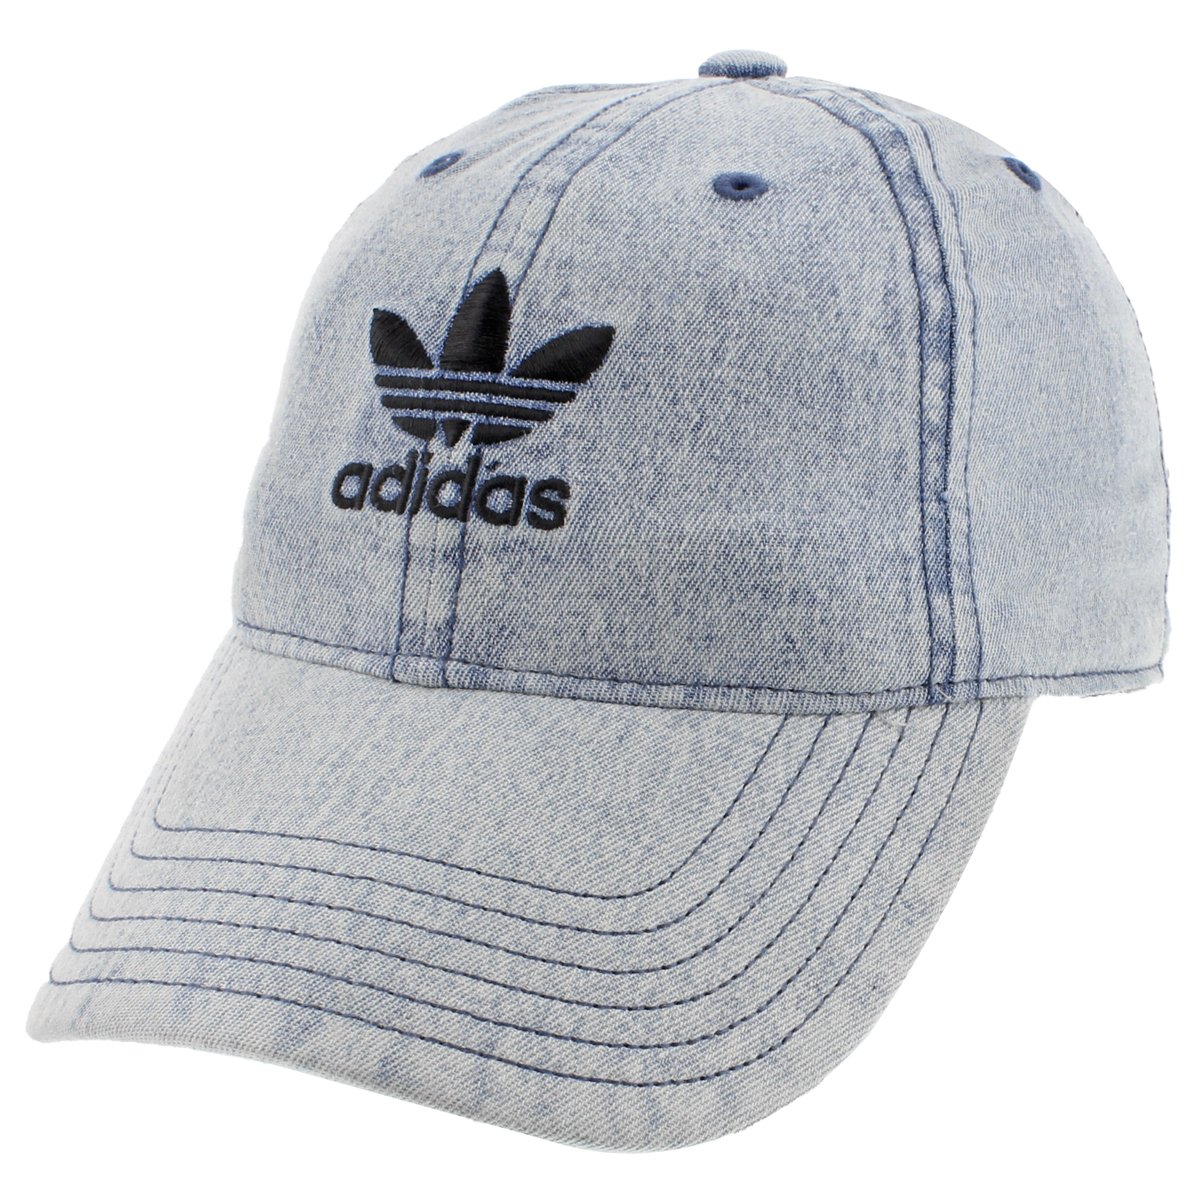 adidas Men's Originals Relaxed Fit Strapback Cap, Washed Blue Denim, One Size